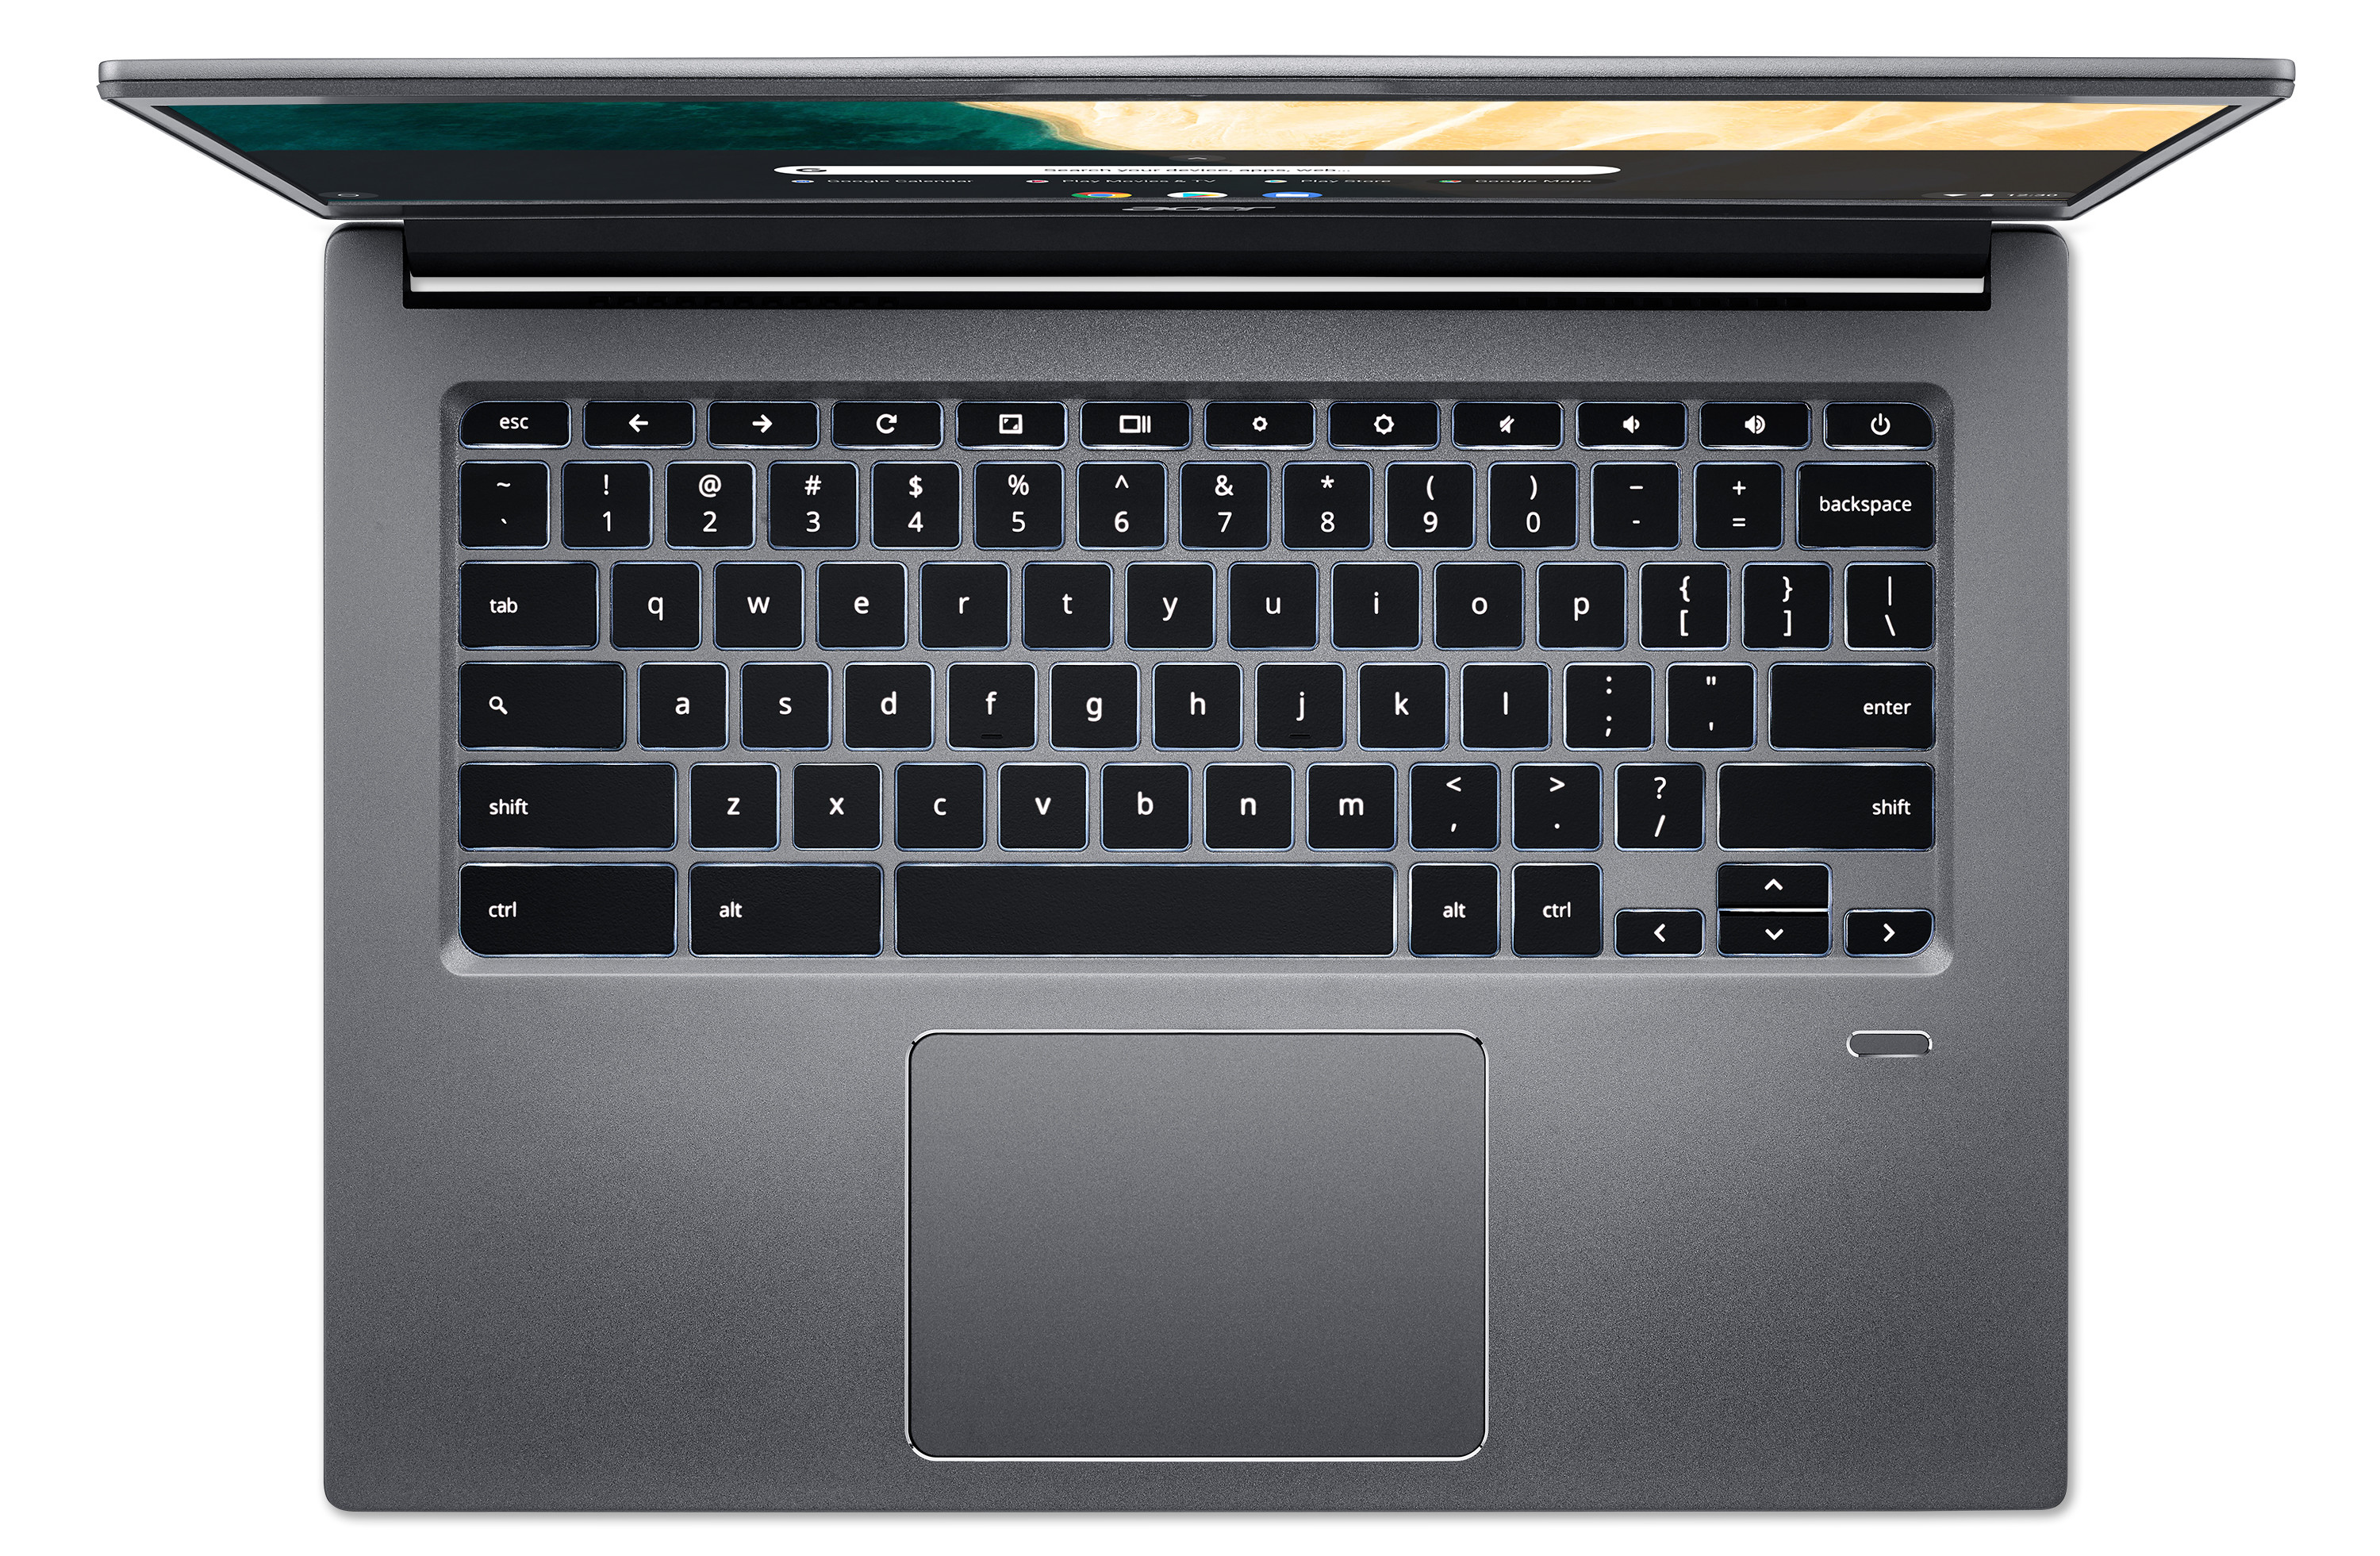 Acer announces two new premium Chromebook devices at next@acer event - Neowin